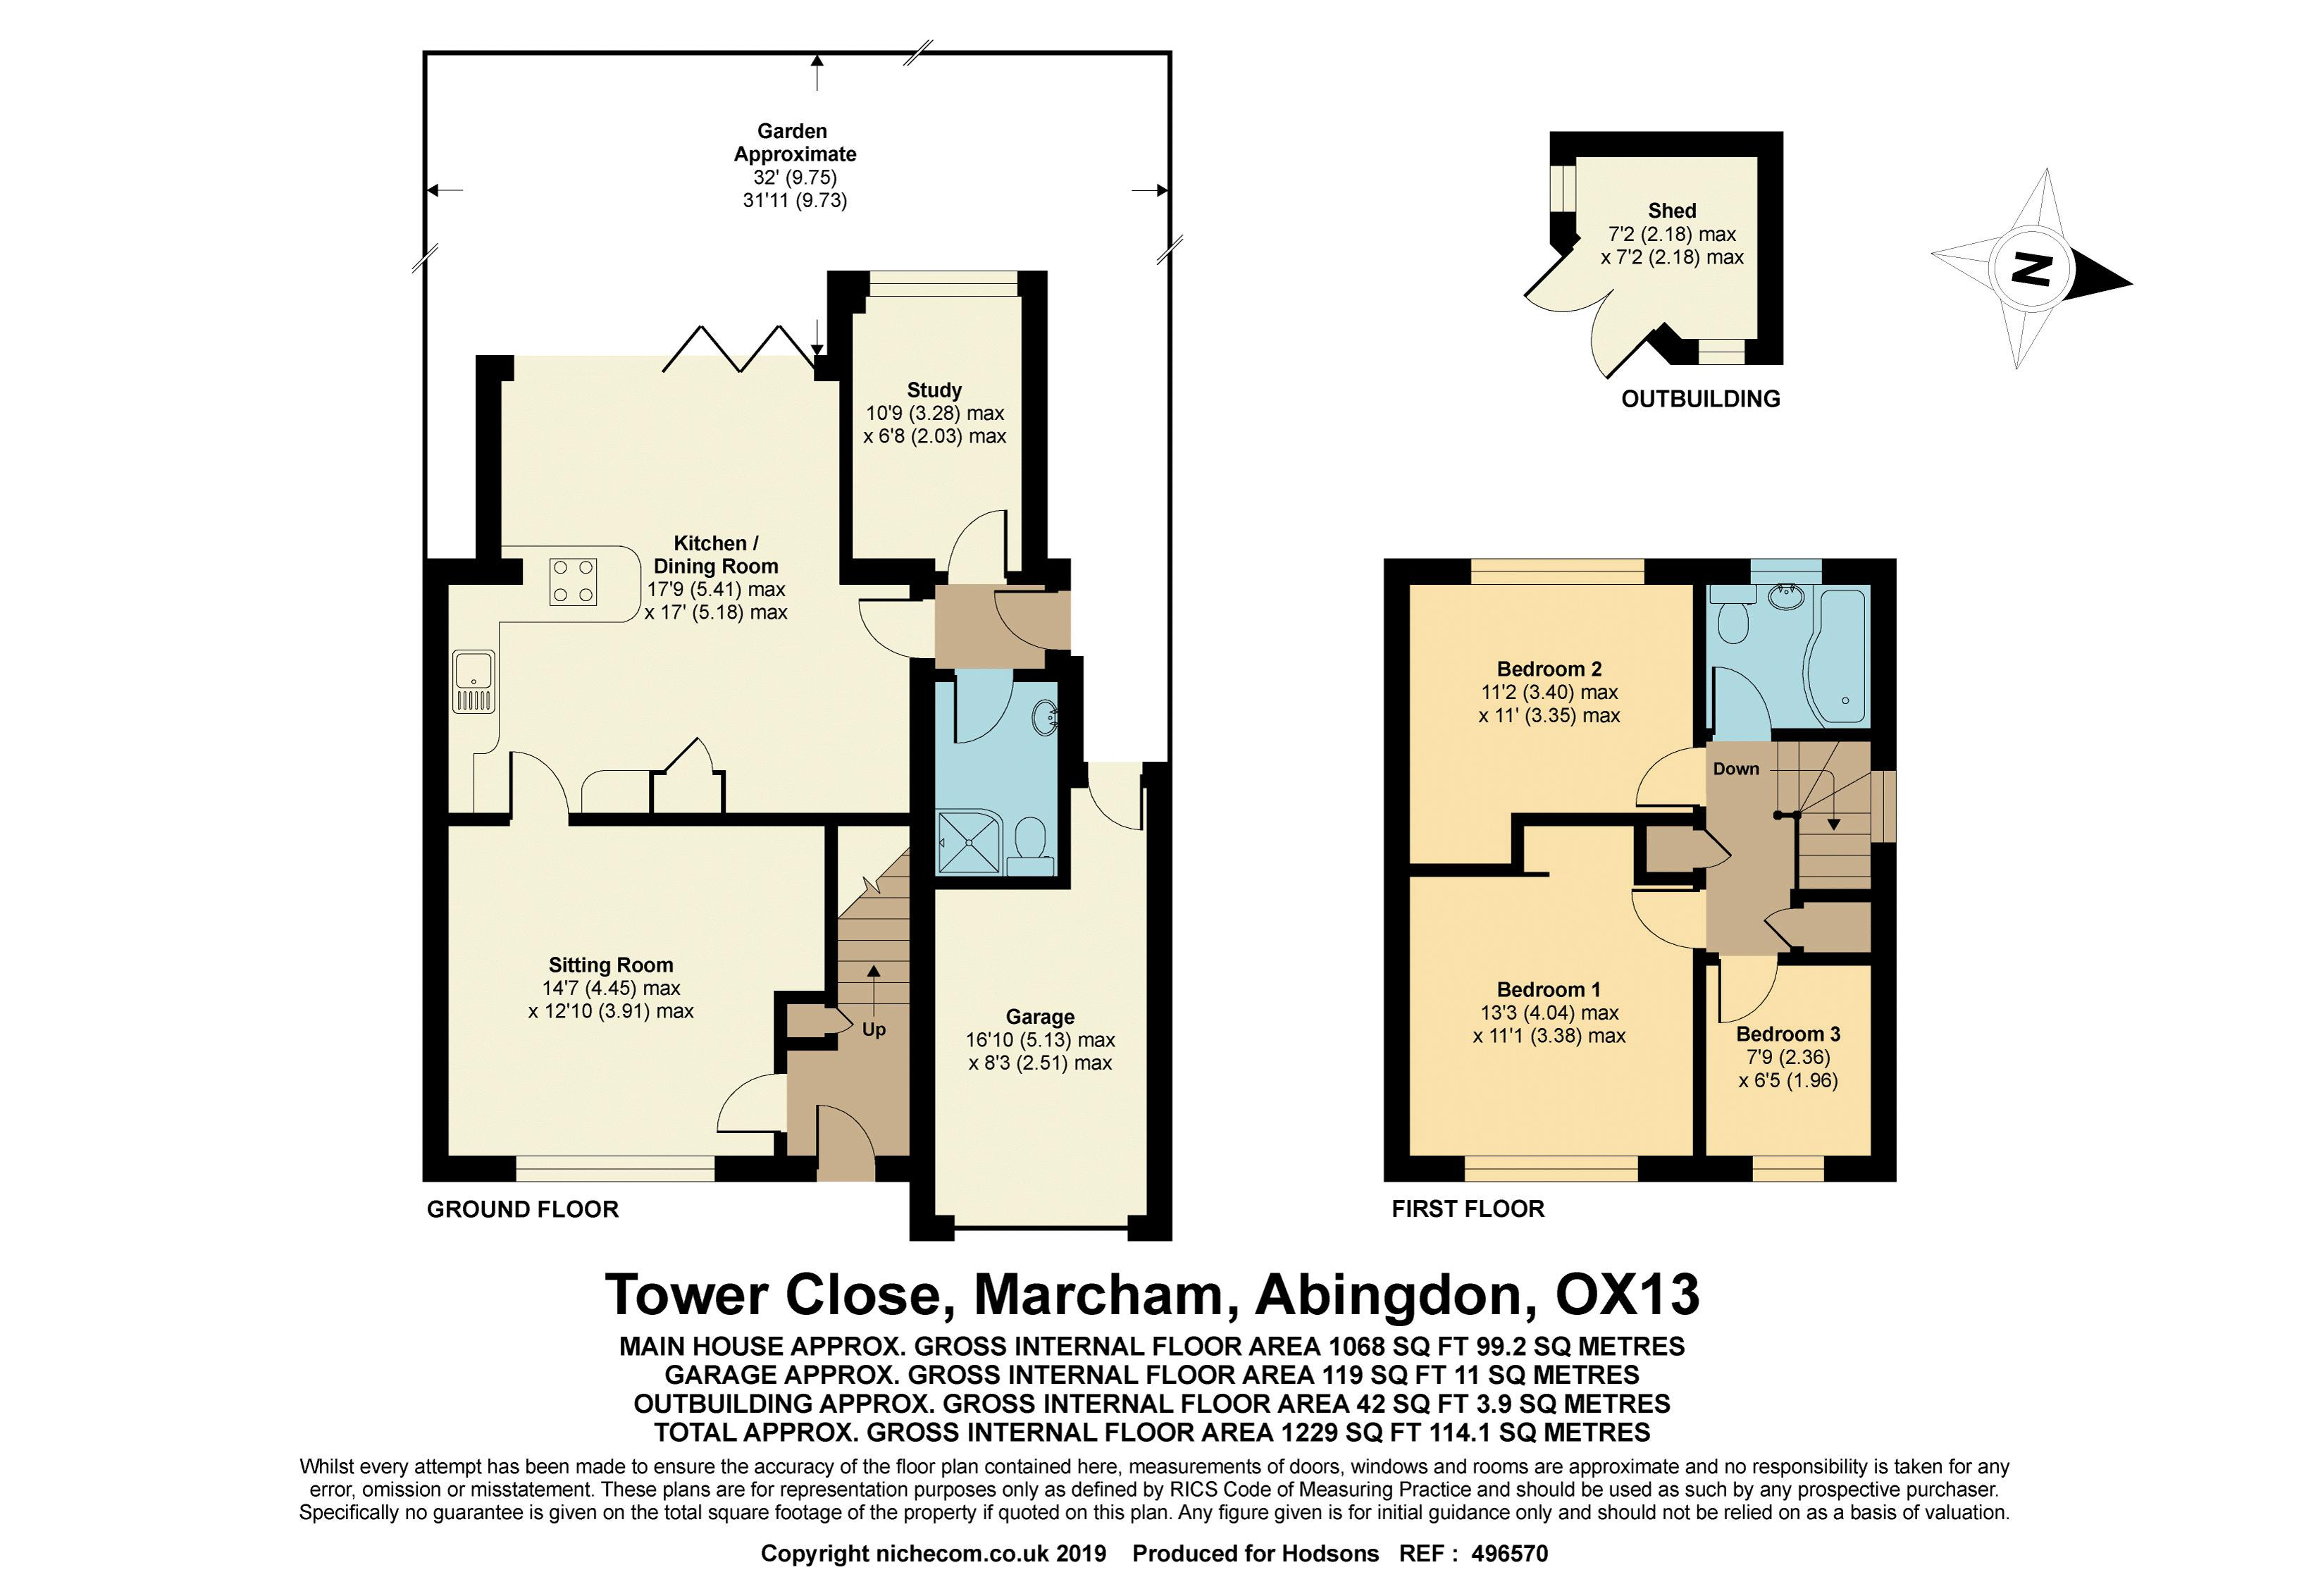 Tower Close Marcham